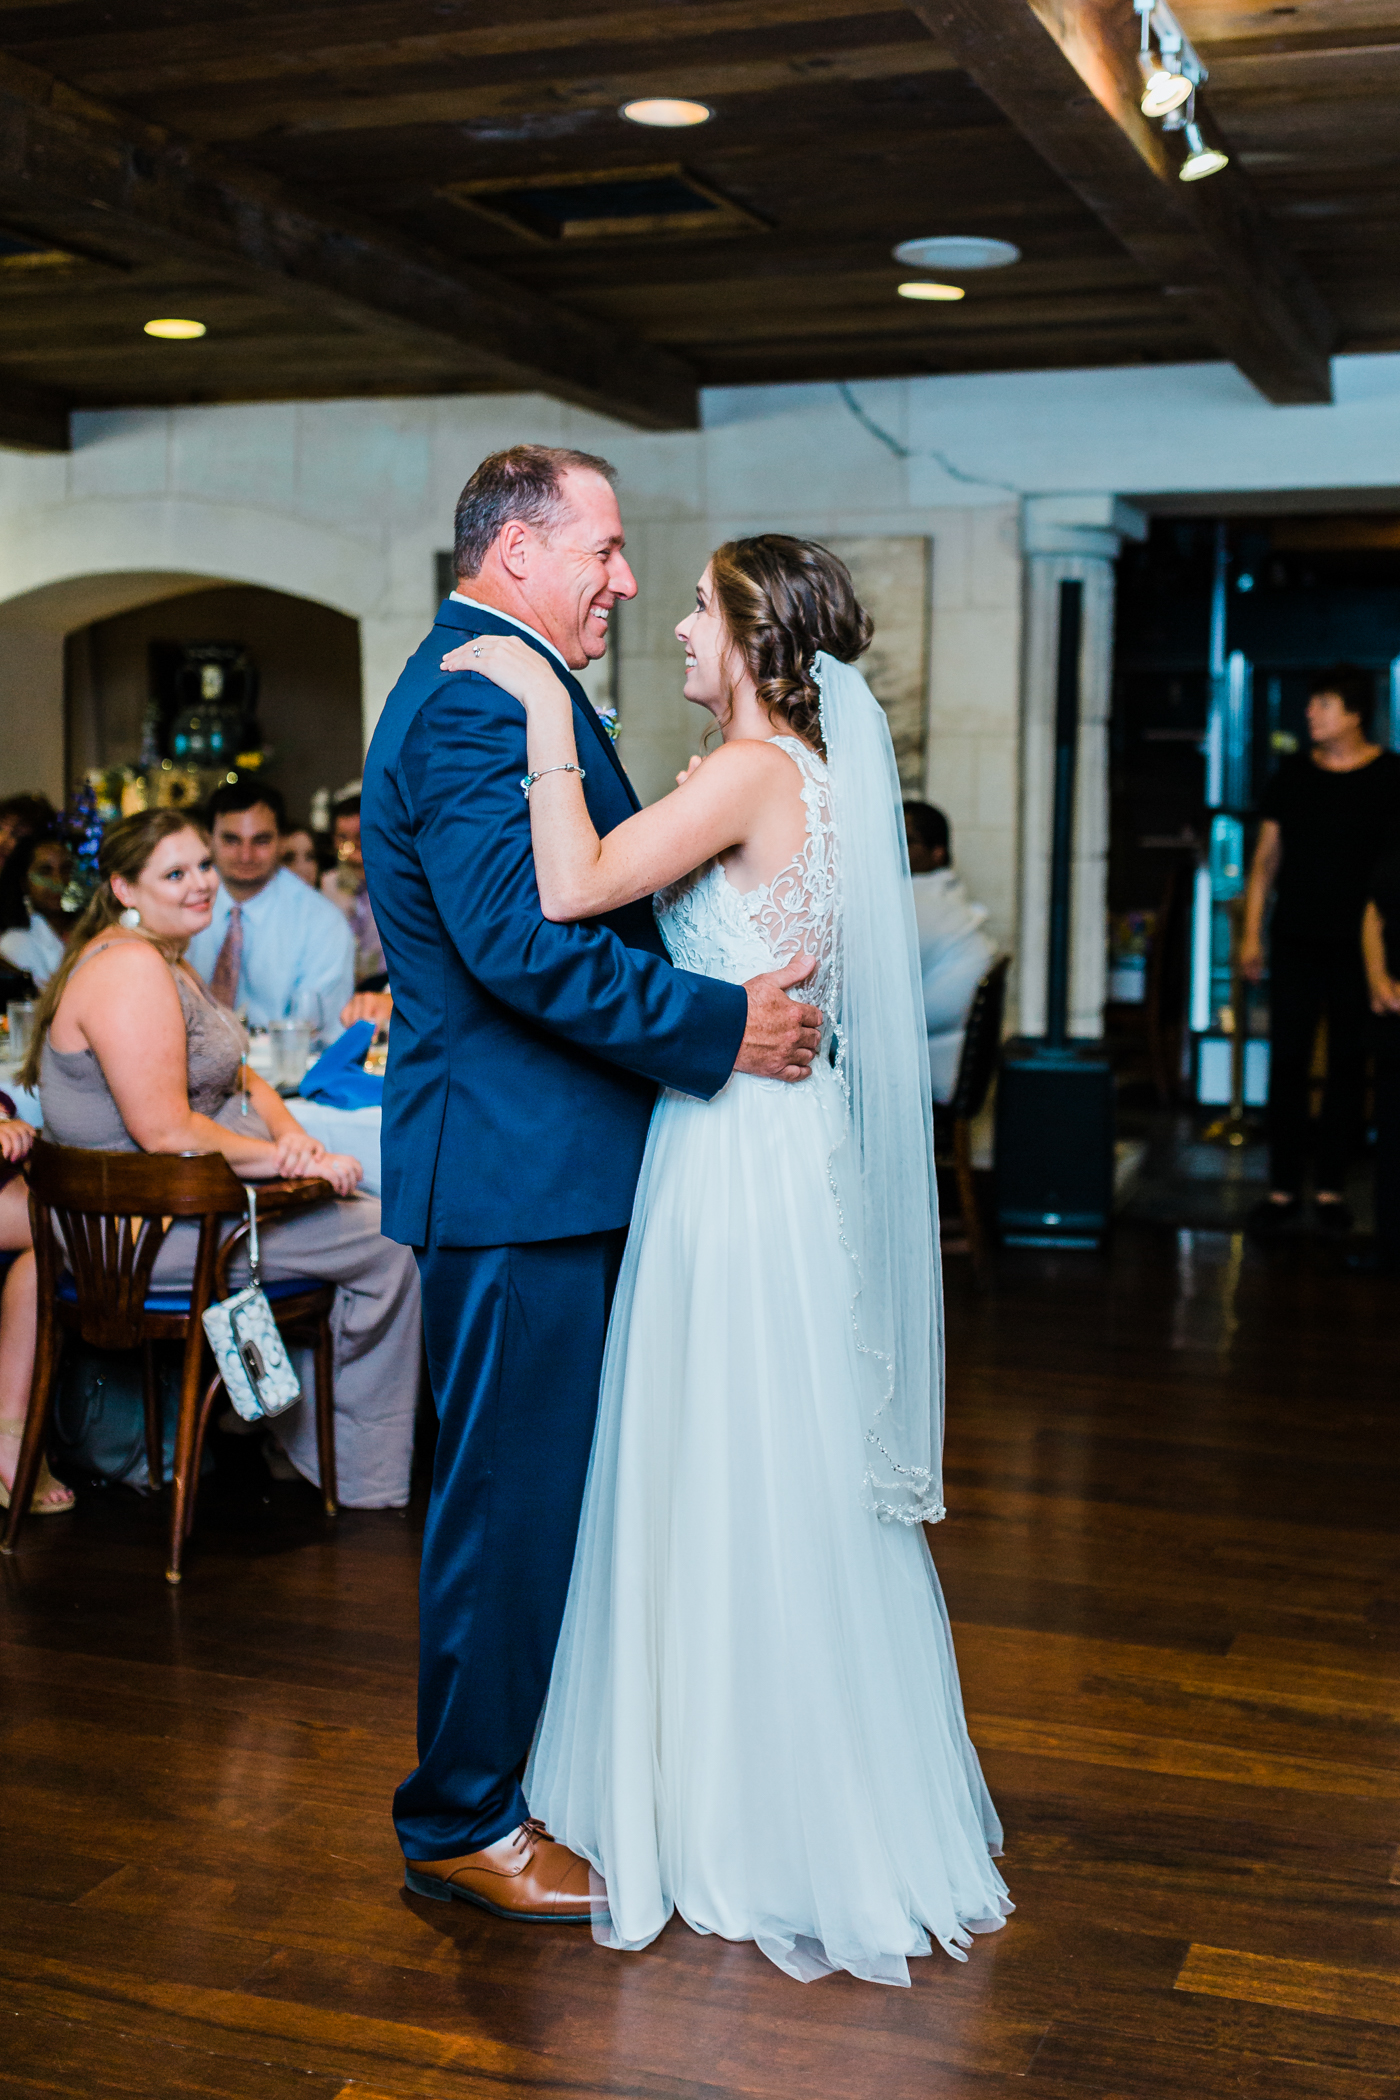 bride dancing with her father - baltimore maryland wedding photographer and videographer